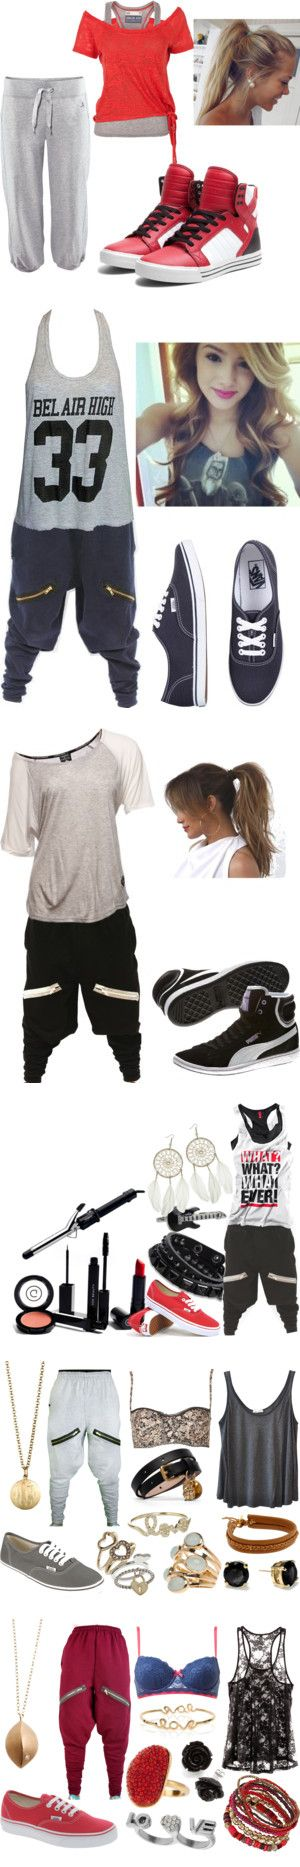 """""""Dance outfits #2"""" by heyitzbriannaa ❤ liked on Polyvore"""